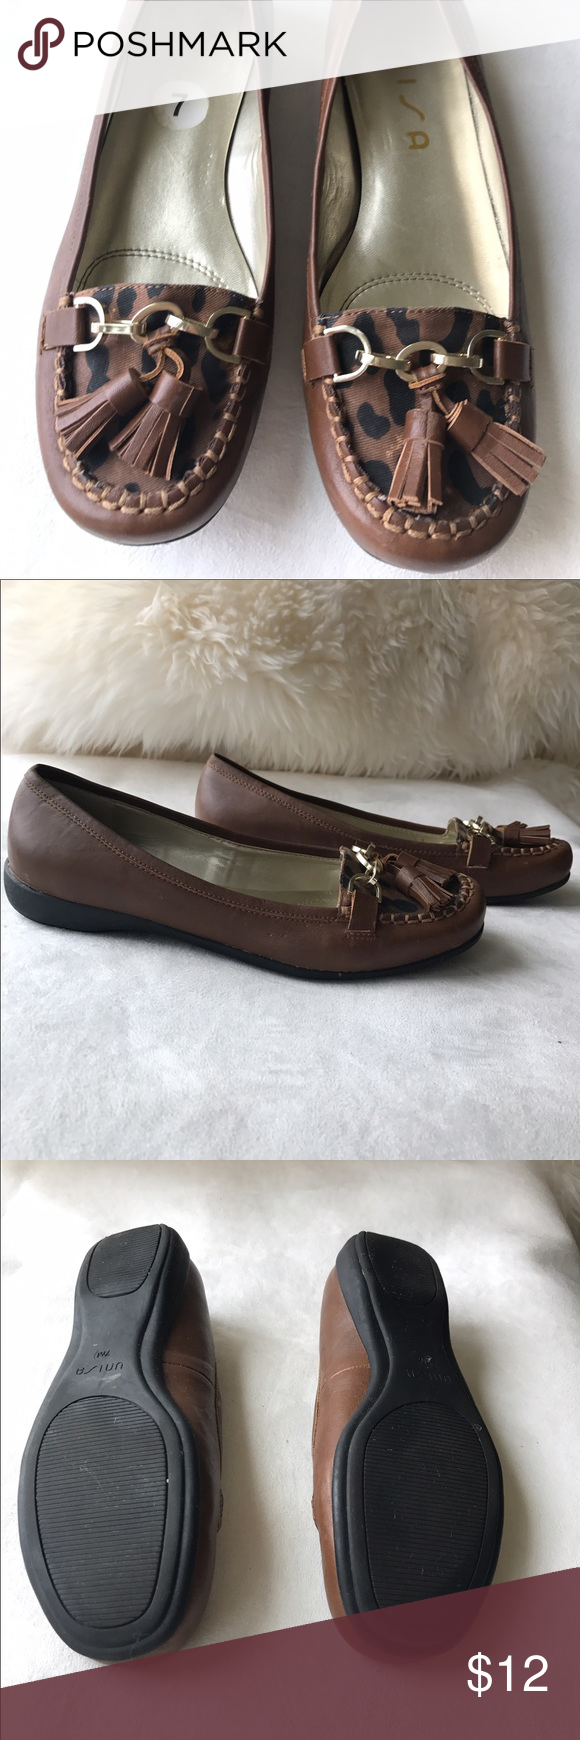 Unisa Loafers These Unisa loafers mesh classic comfort with modern sass. Cheetah print is complimented by cute tassel detail and gold findings. Really comfortable sole for all day wear. Unisa Shoes Flats & Loafers